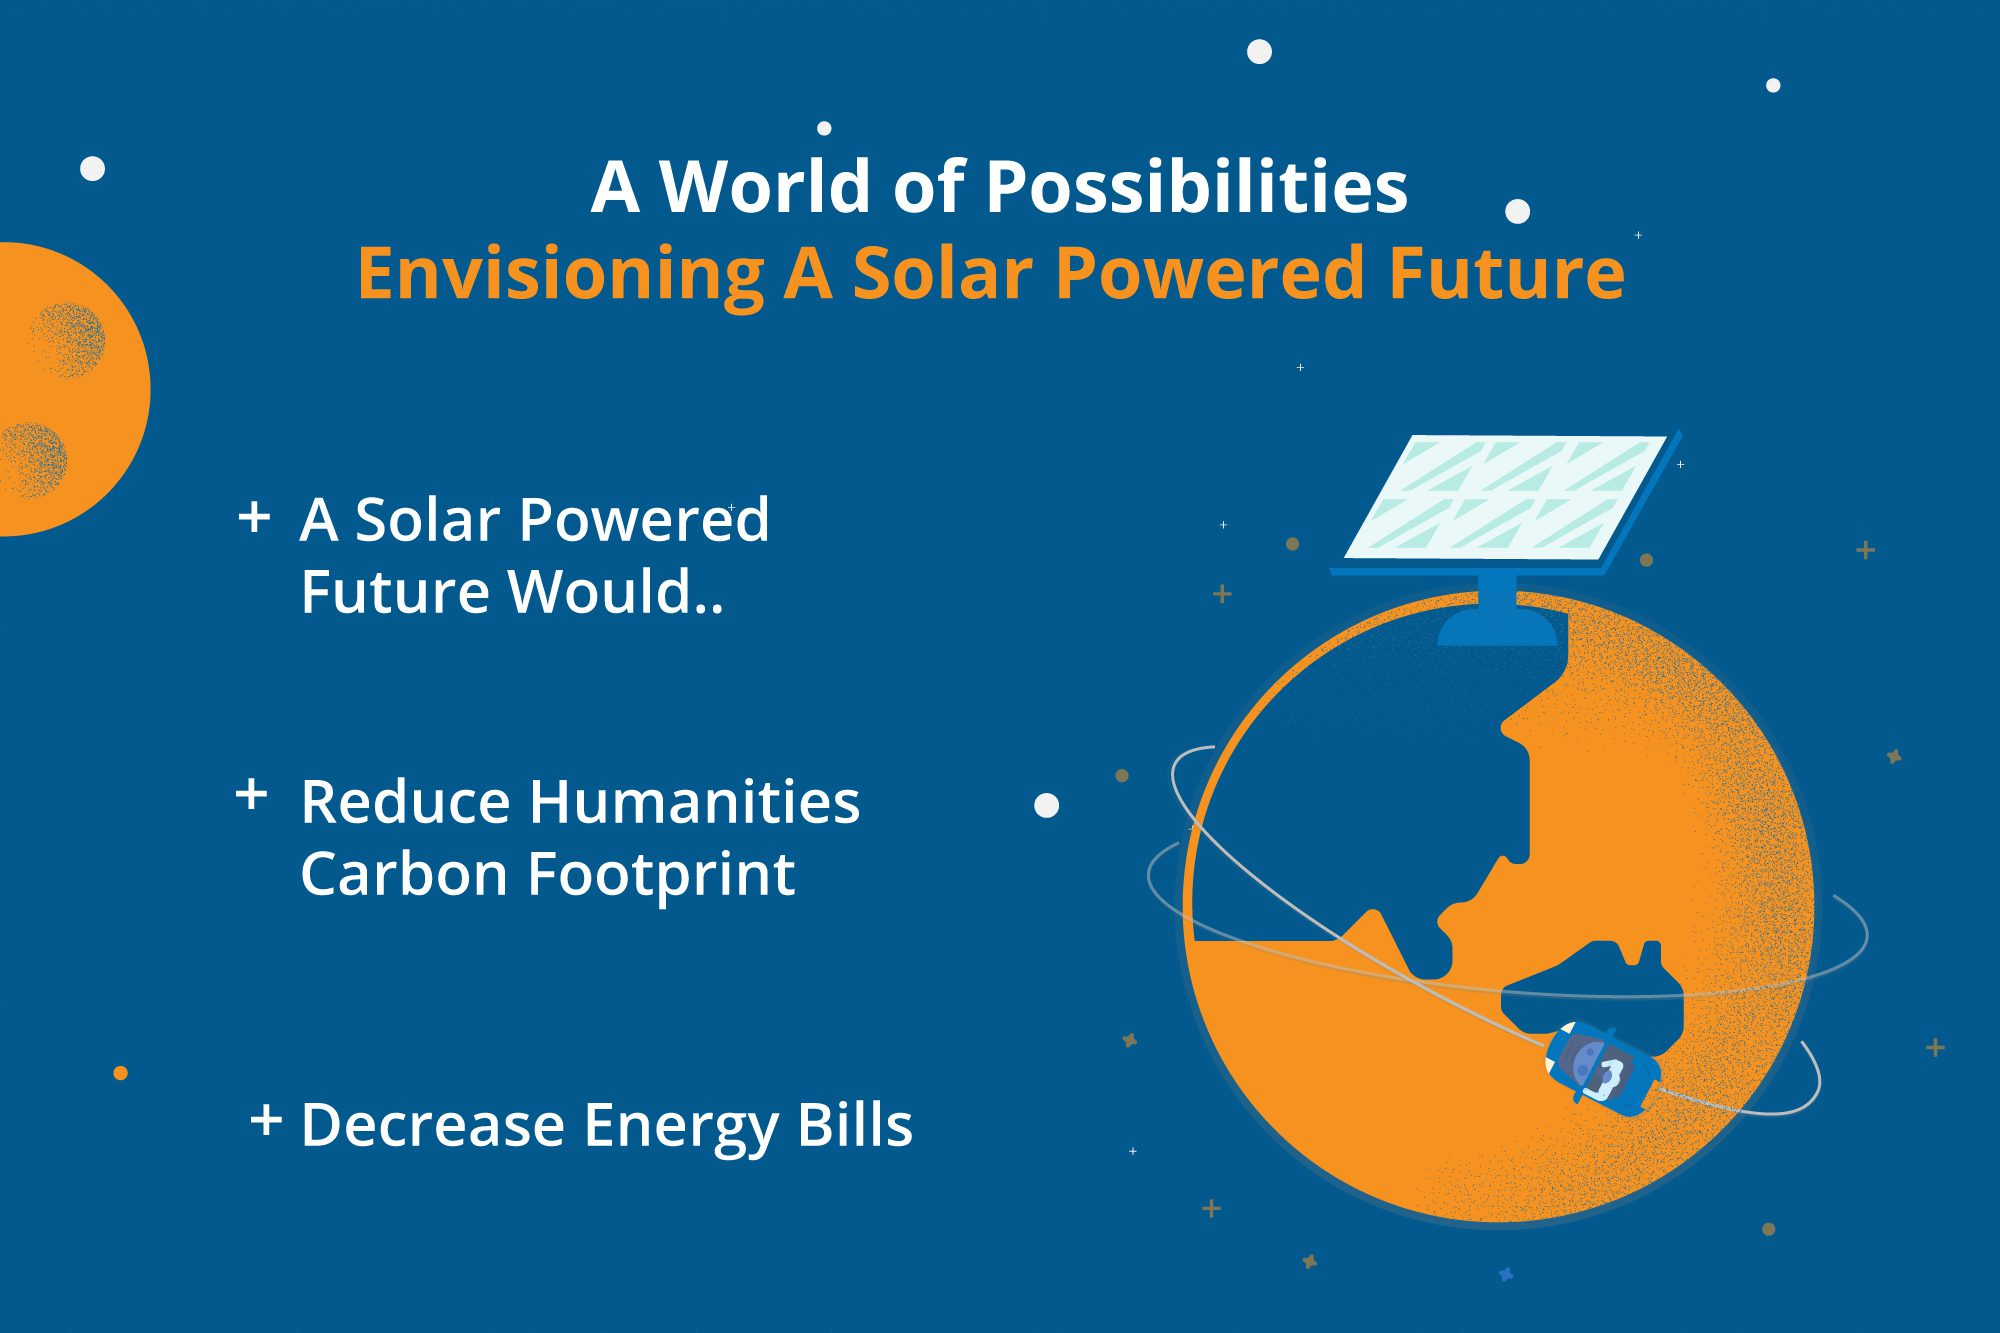 Explaining what a solar powered future would look like